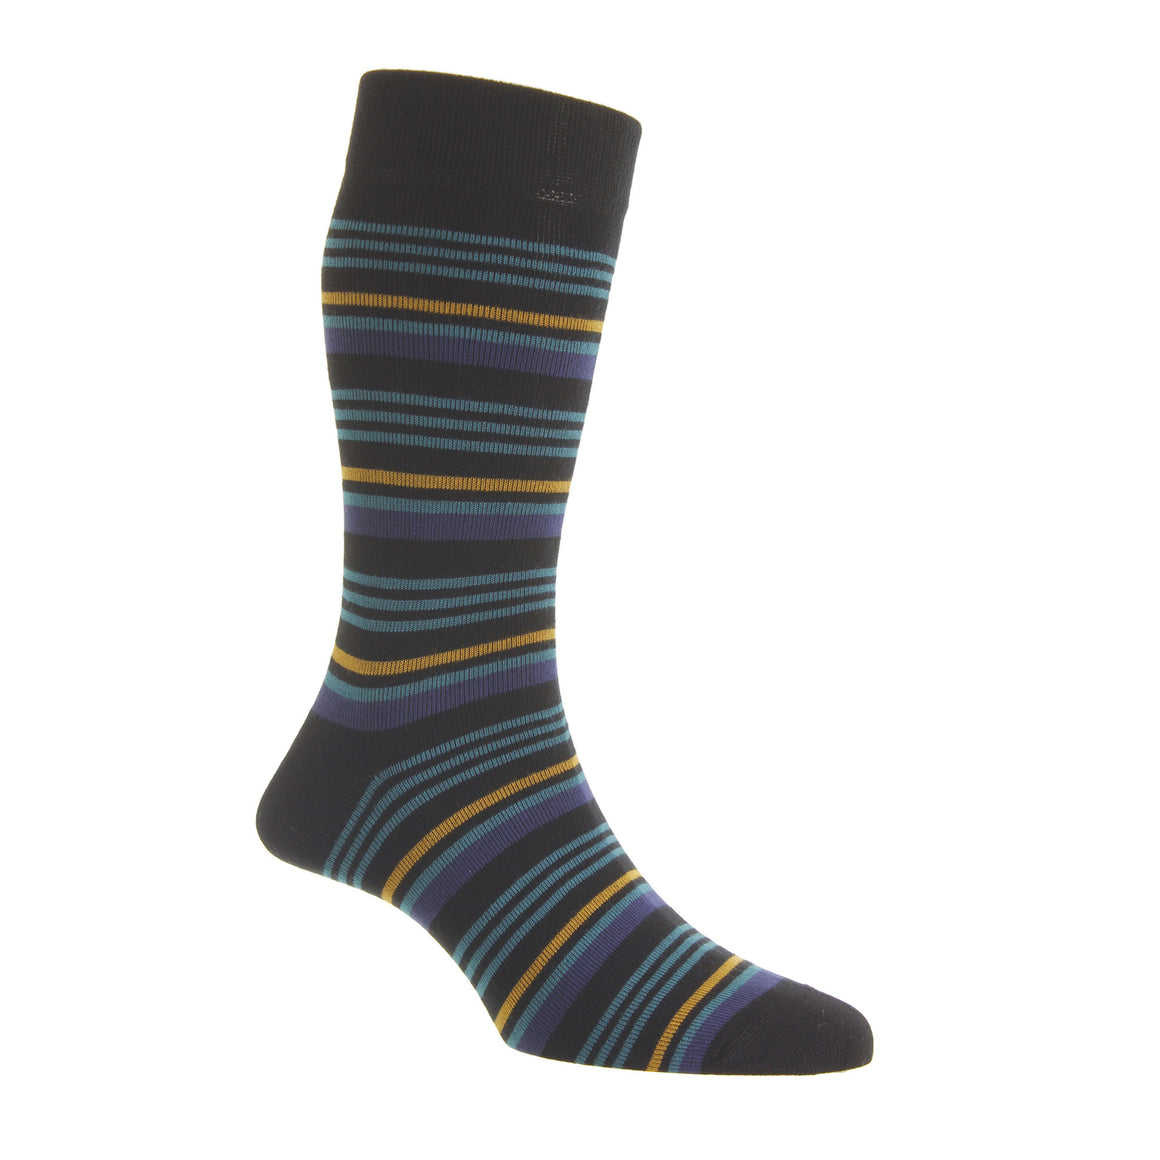 HJ6529 Socks for Men in Black/Orche